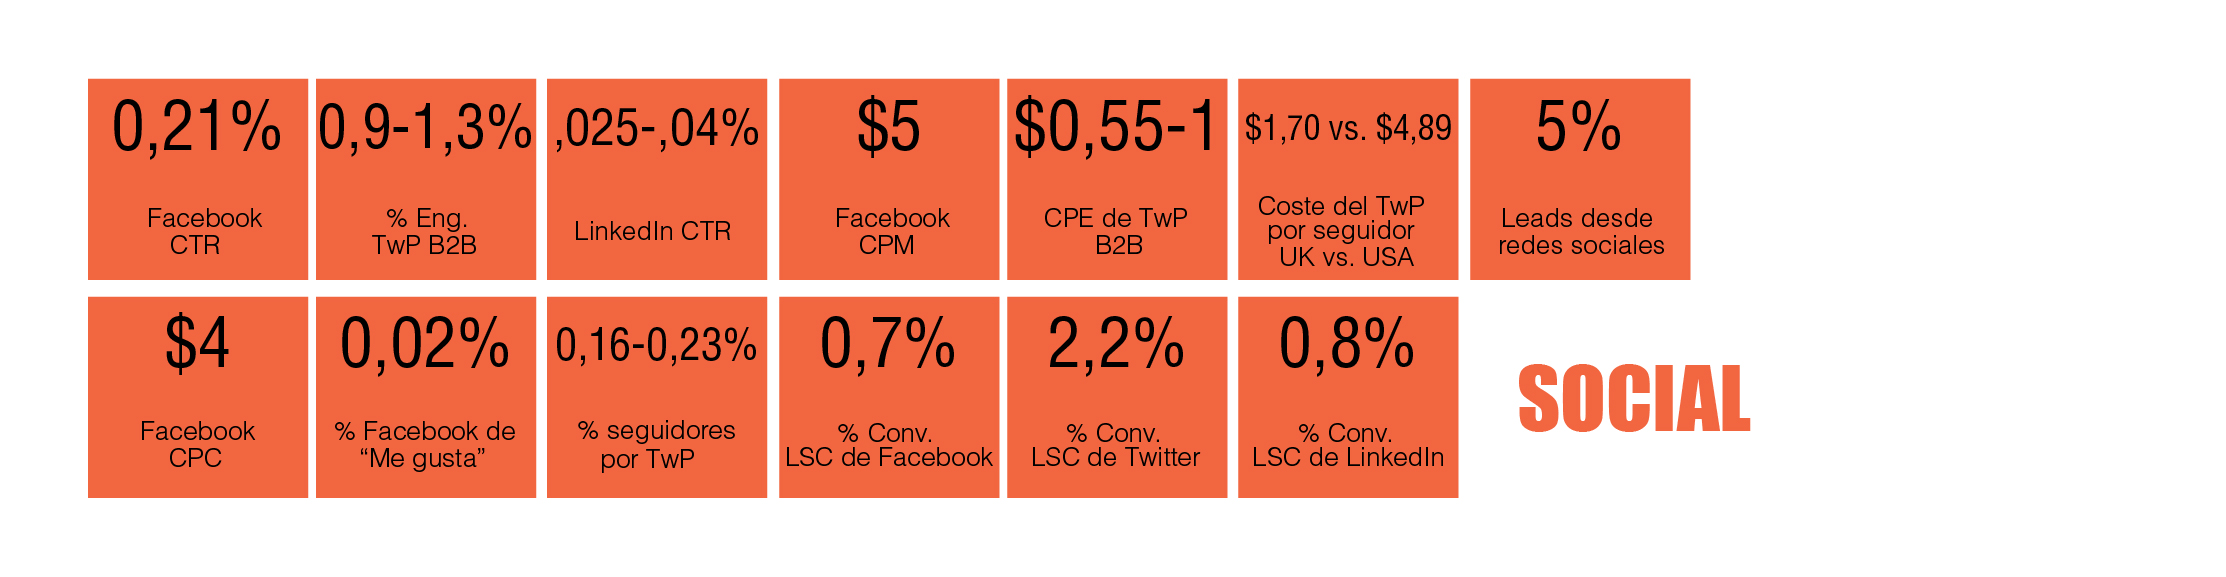 tabla periódica de marketing digital B2B: Redes sociales